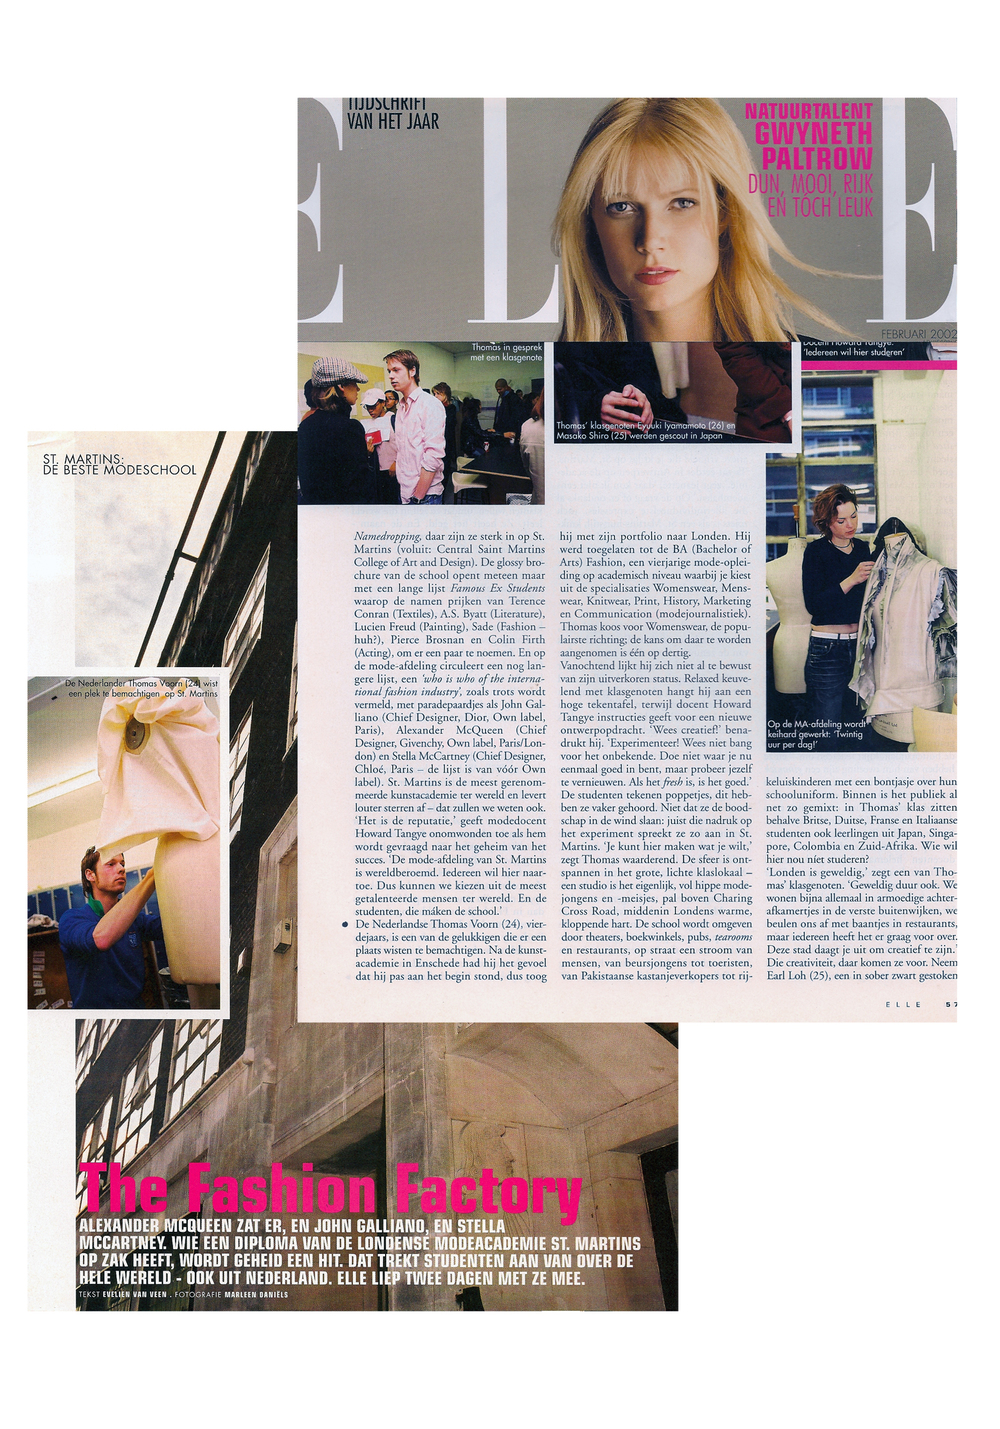 Press-ELLE-magazine-interview-on-Thomas-Voorn.jpg